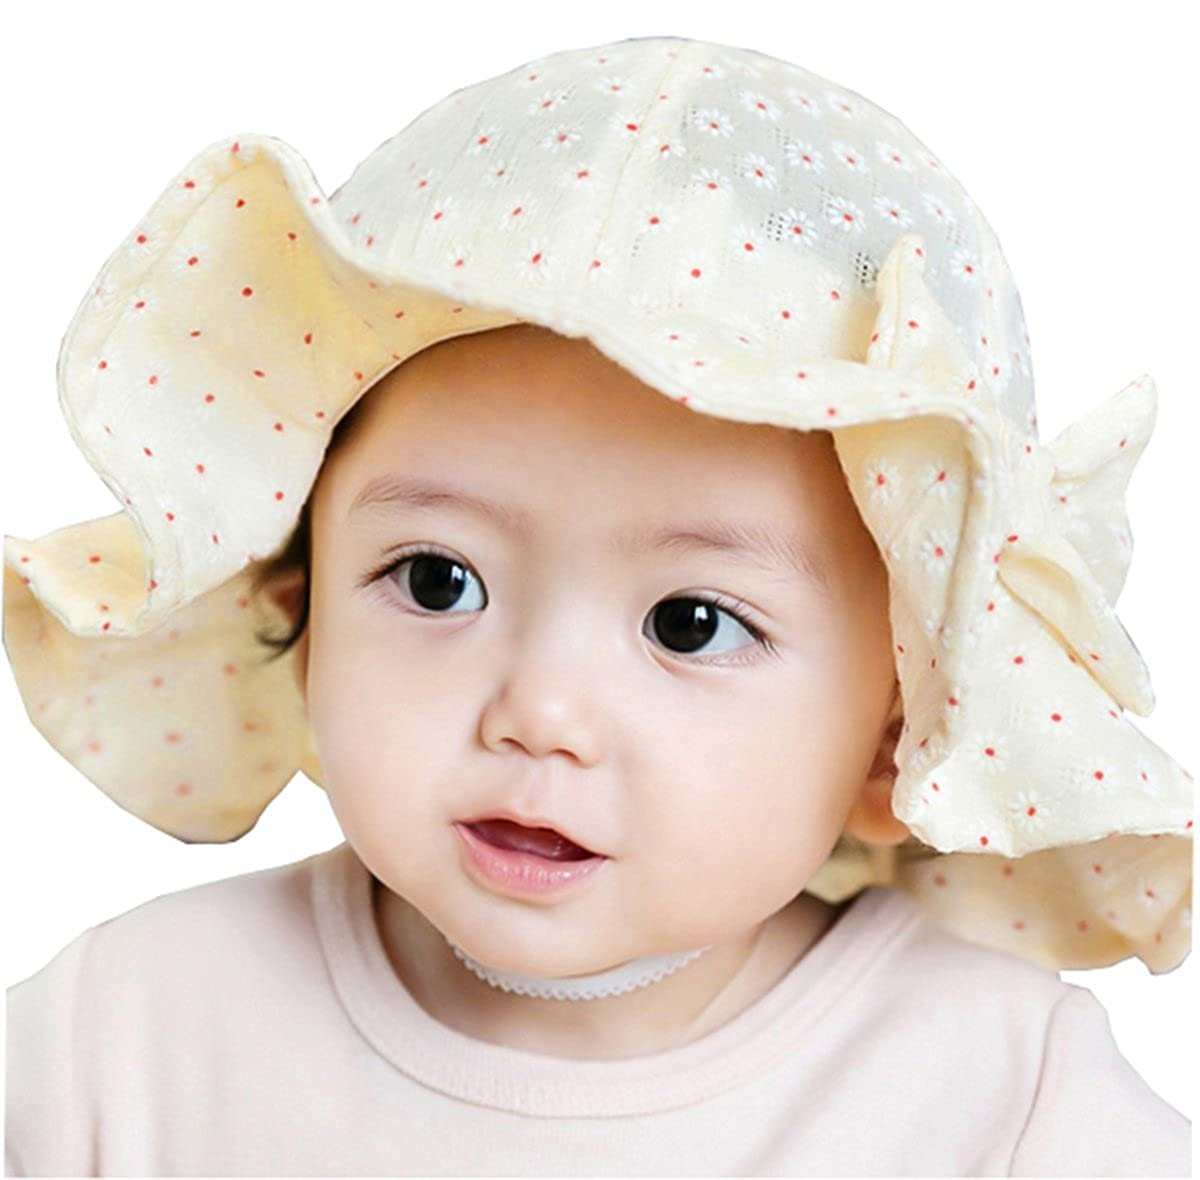 Taiycyxgan Baby Sun Hat With Chin Strap Floral Wide Brim Hat Breathable Adjust